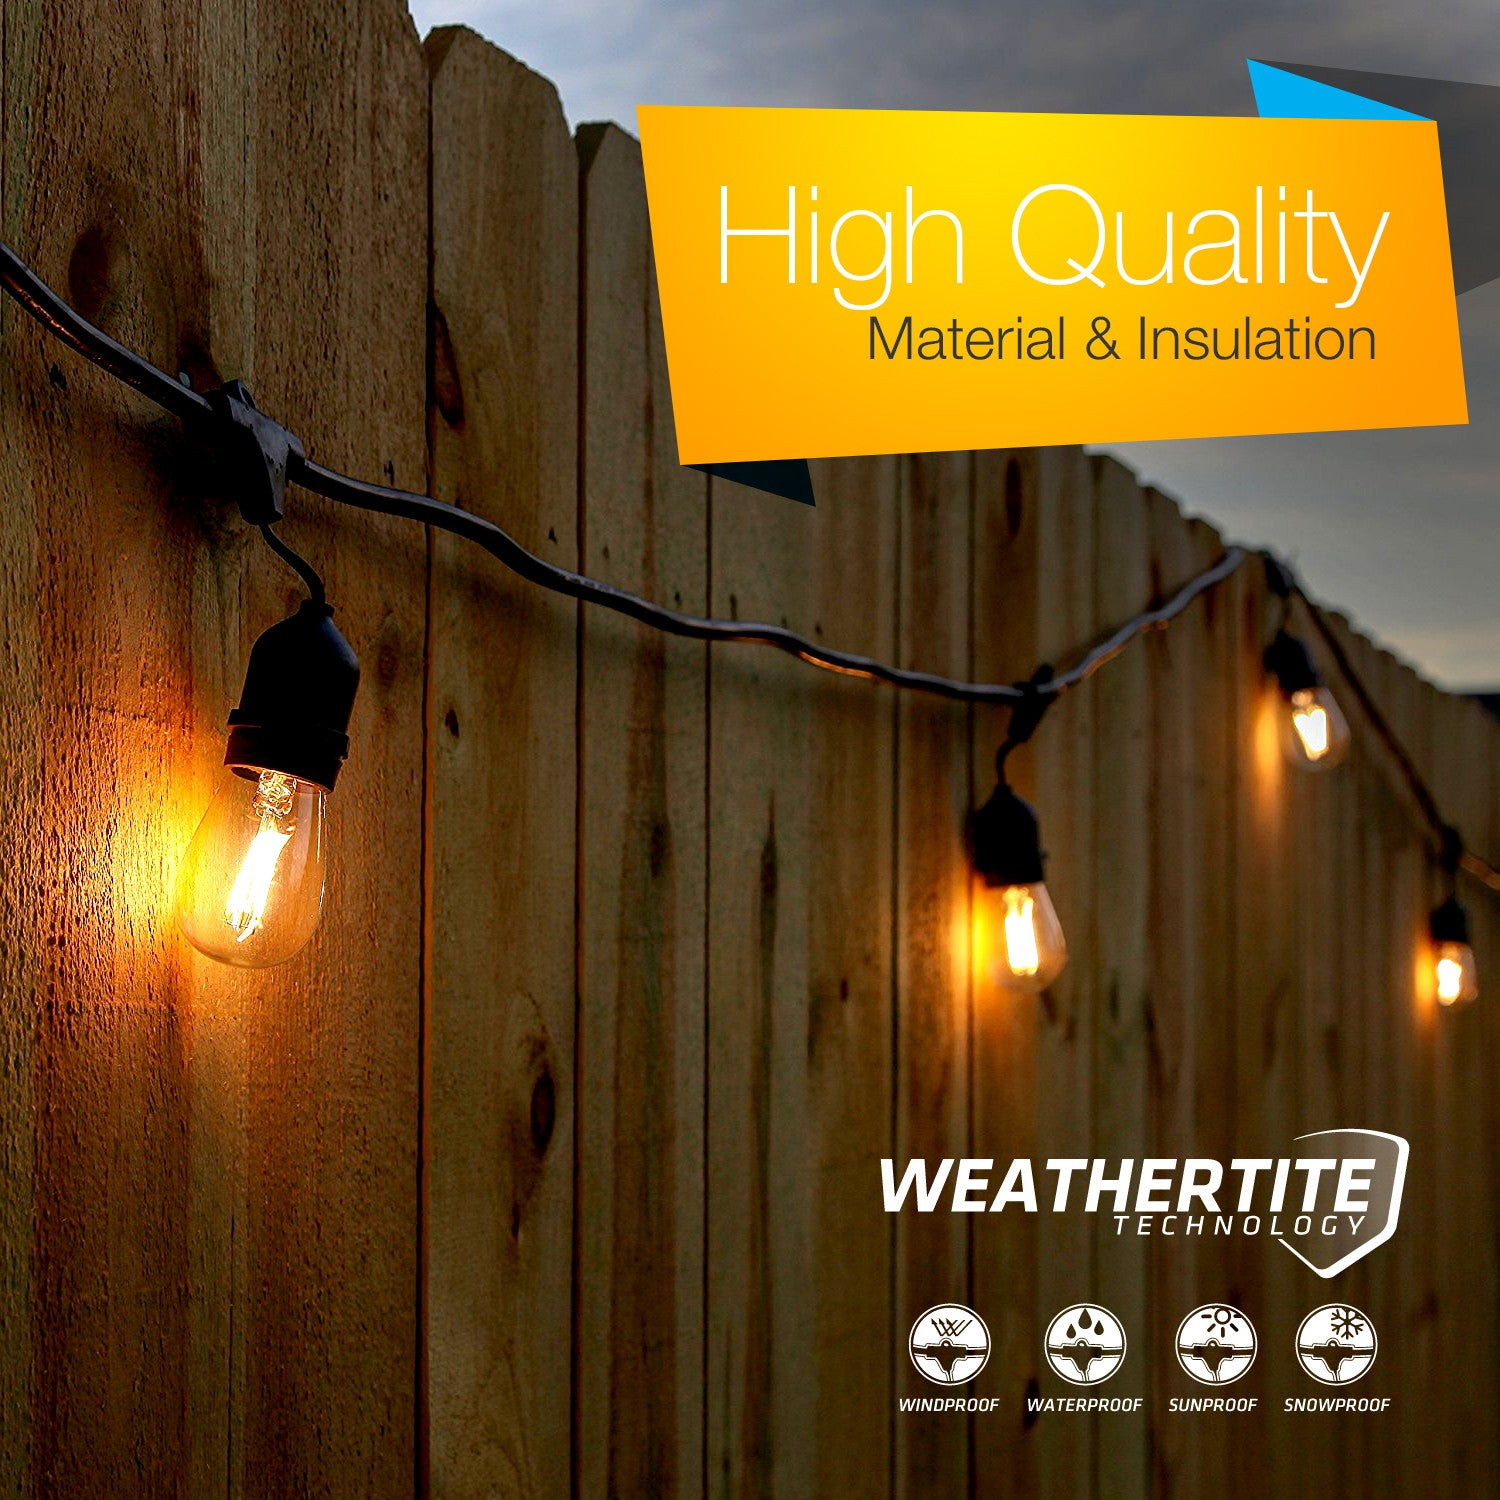 Led patio string lights - Brightech Store Brightech Ambience Pro Led Outdoor Weatherproof Commercial Grade String Lights Weathertite Technology Soothing 1 Watt Led Bulbs